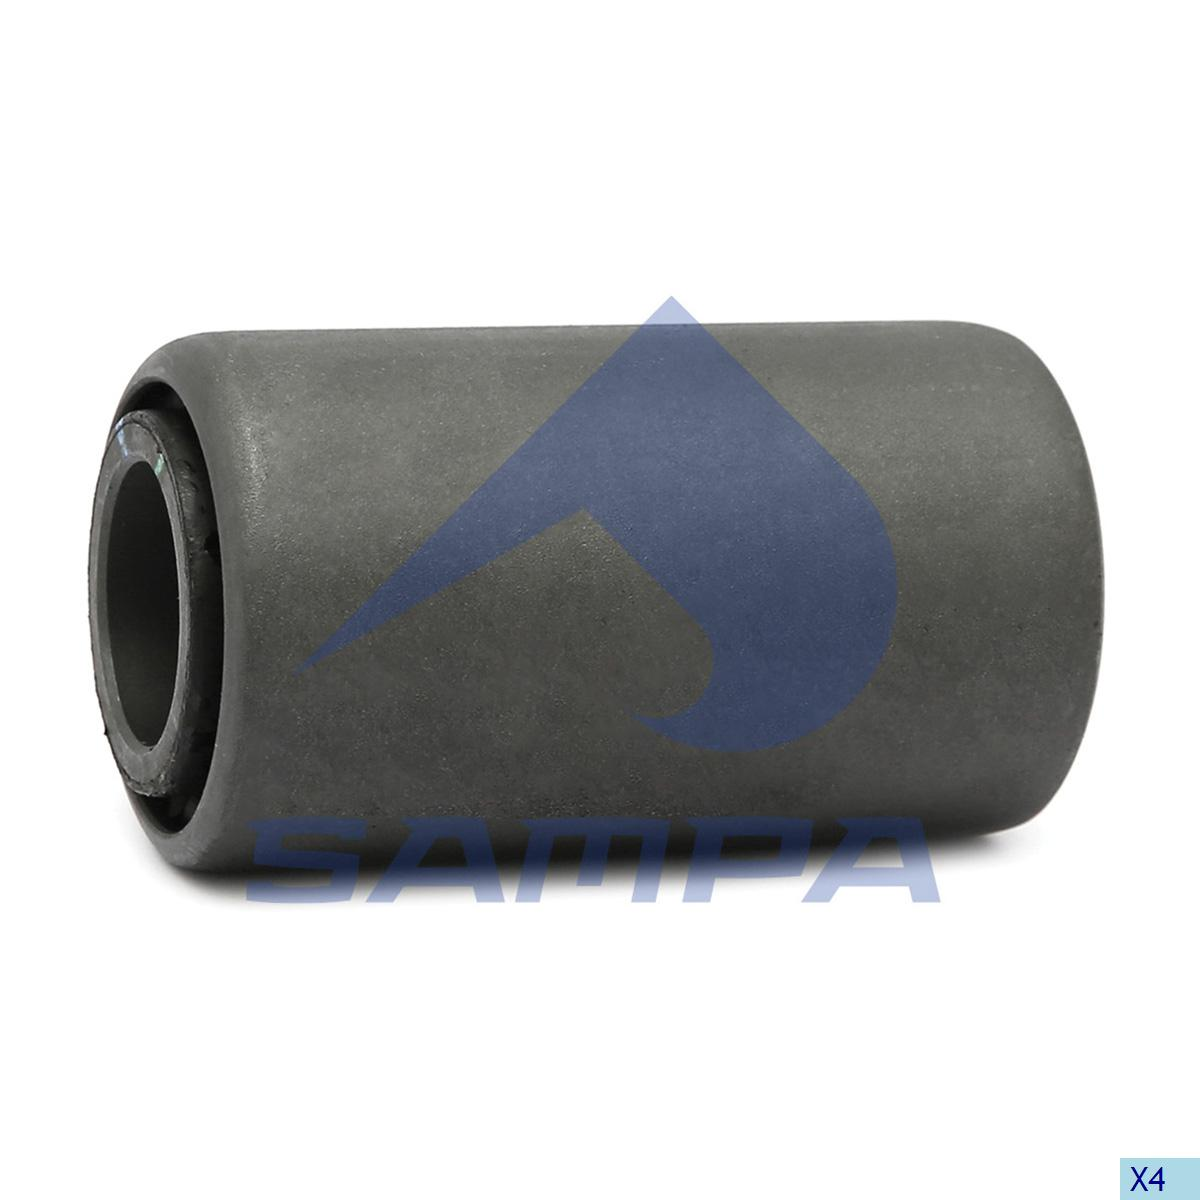 Rubber Bushing, Spring, Bergische, Suspension